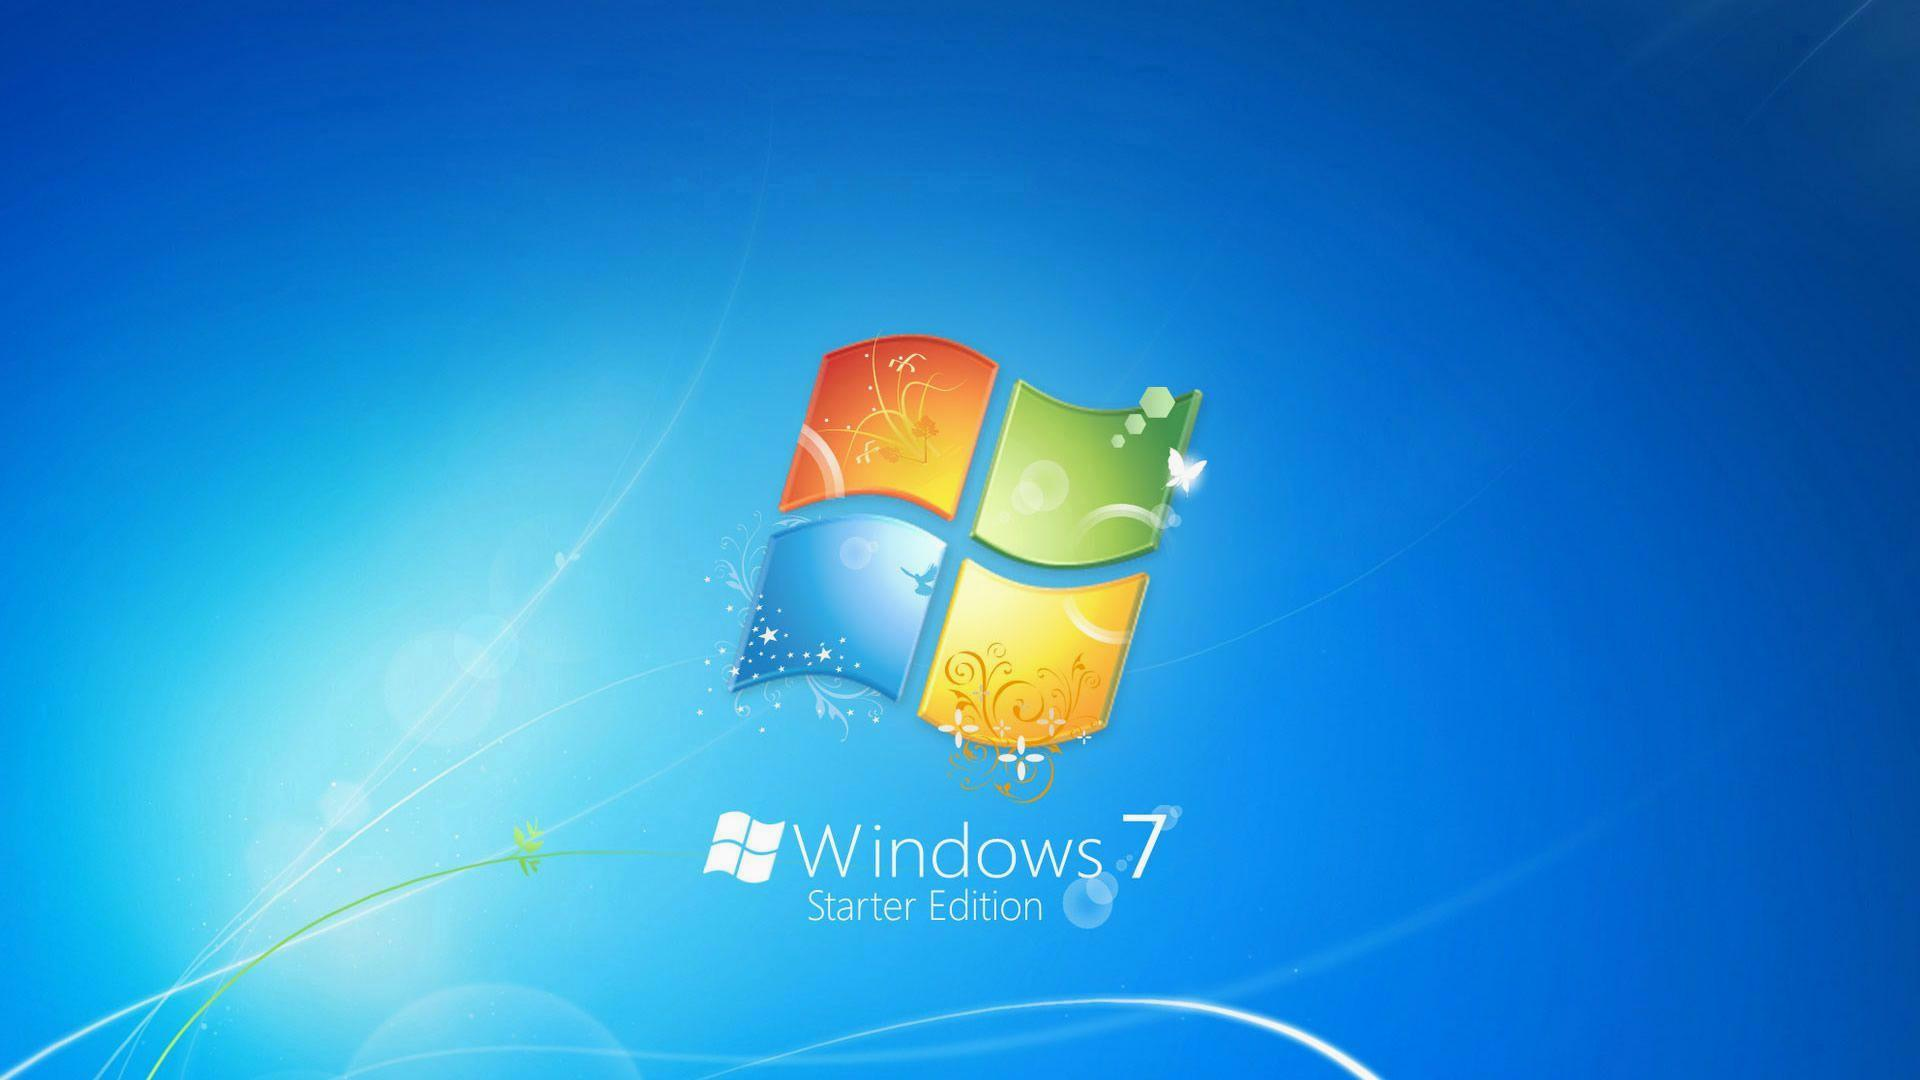 Windows  Desktop Wallpaper Themes  Windows  Live Images, HD 1920x1080